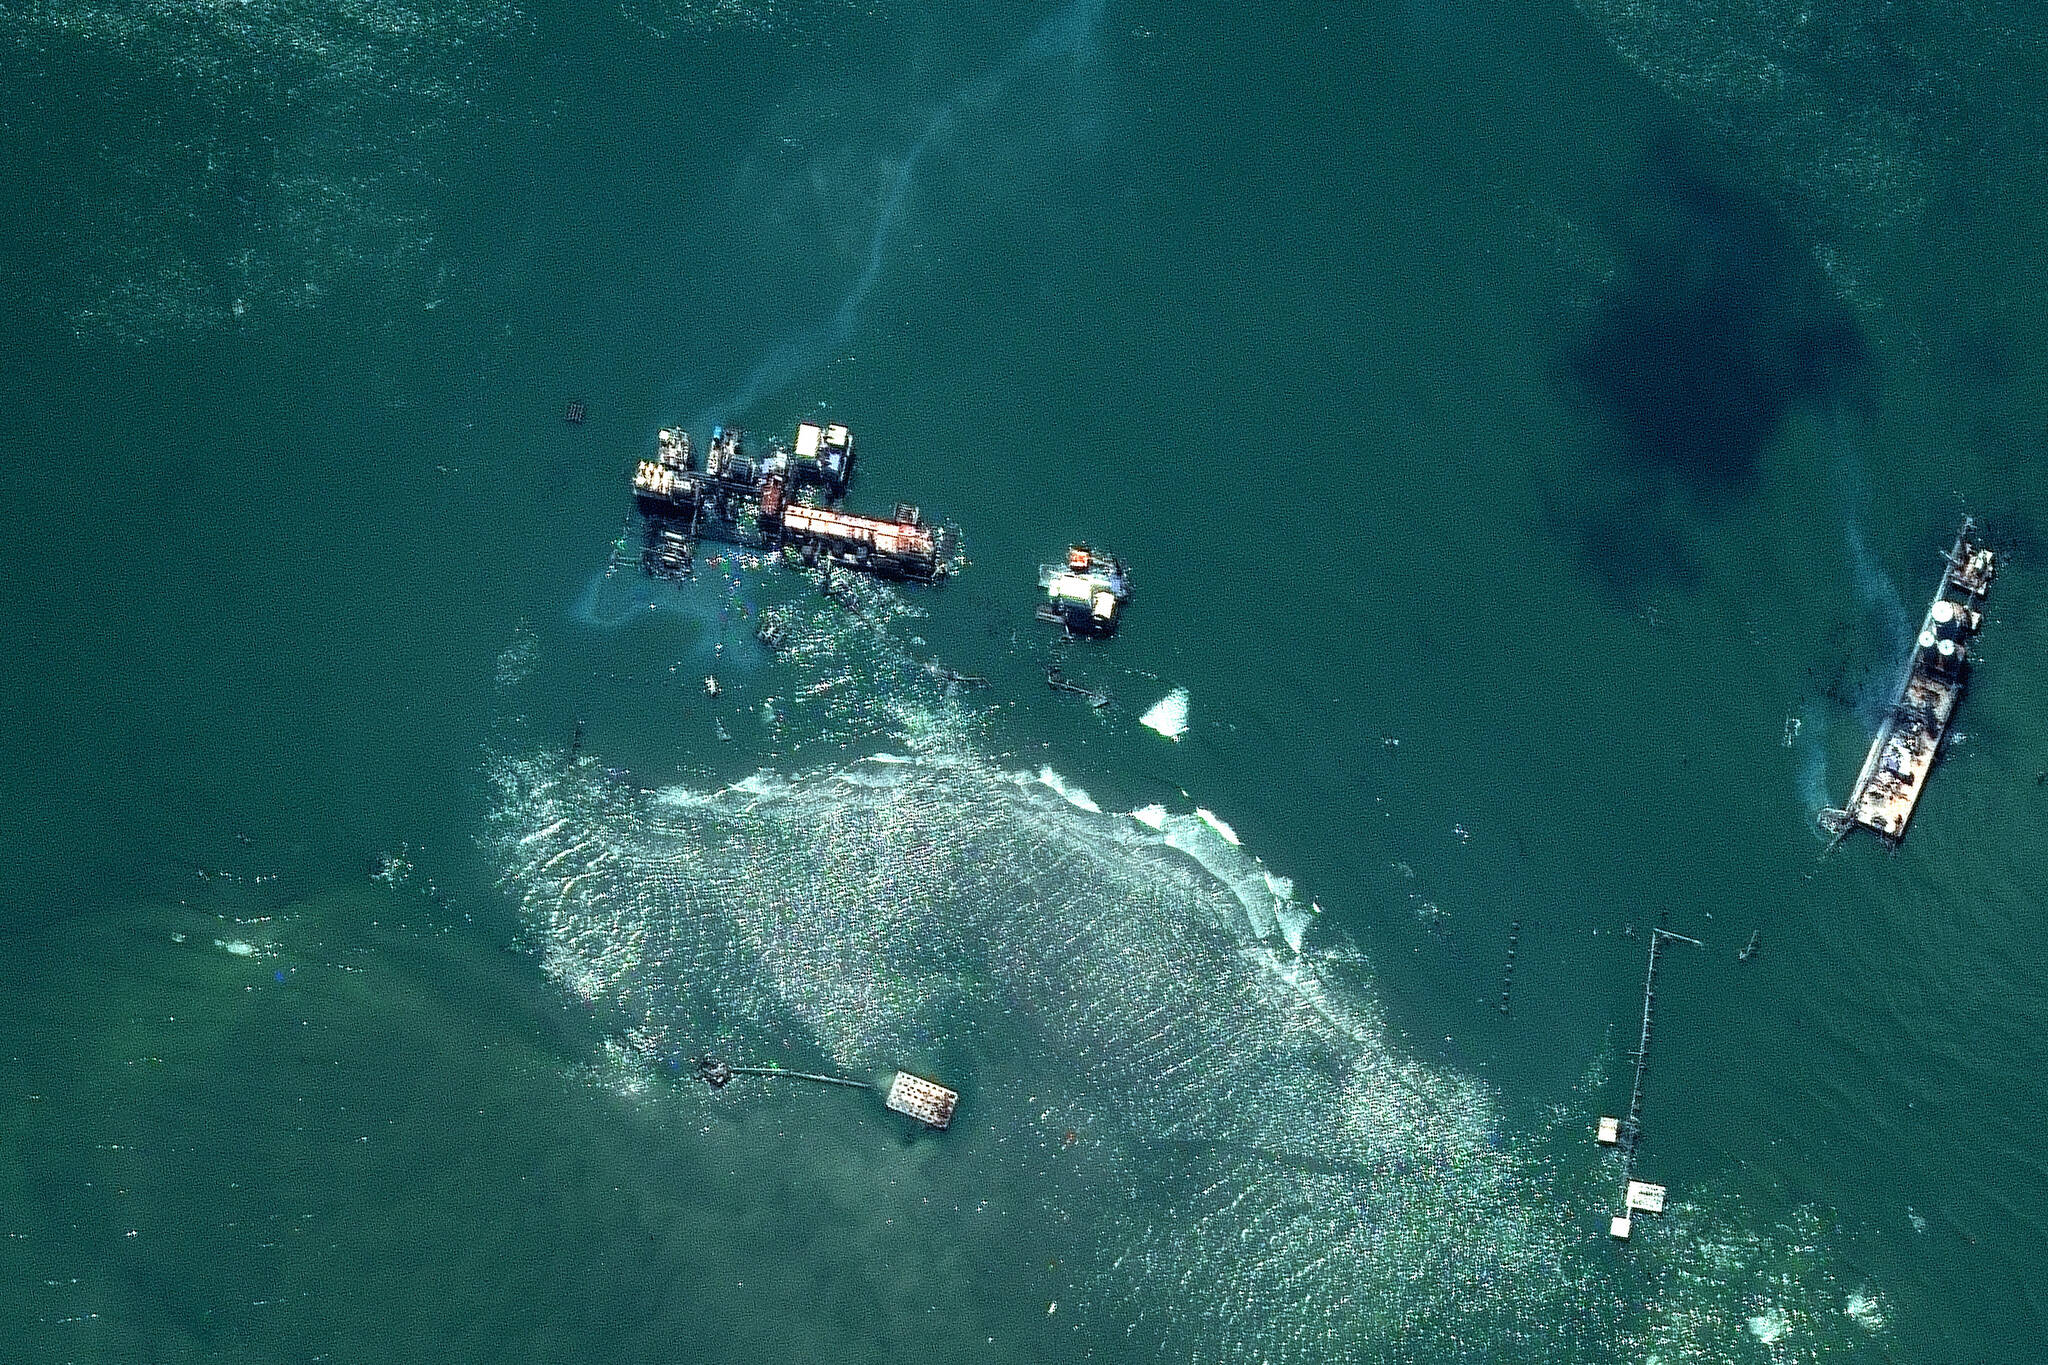 This Sept. 4, 2021, satellite image provided by Maxar shows a view of oil slicks in the Gulf of Mexico at East Timbalier Island National Wildlife Refuge in Louisiana, in the aftermath of Hurricane Ida. (Satellite image ©2021 Maxar Technologies via AP)